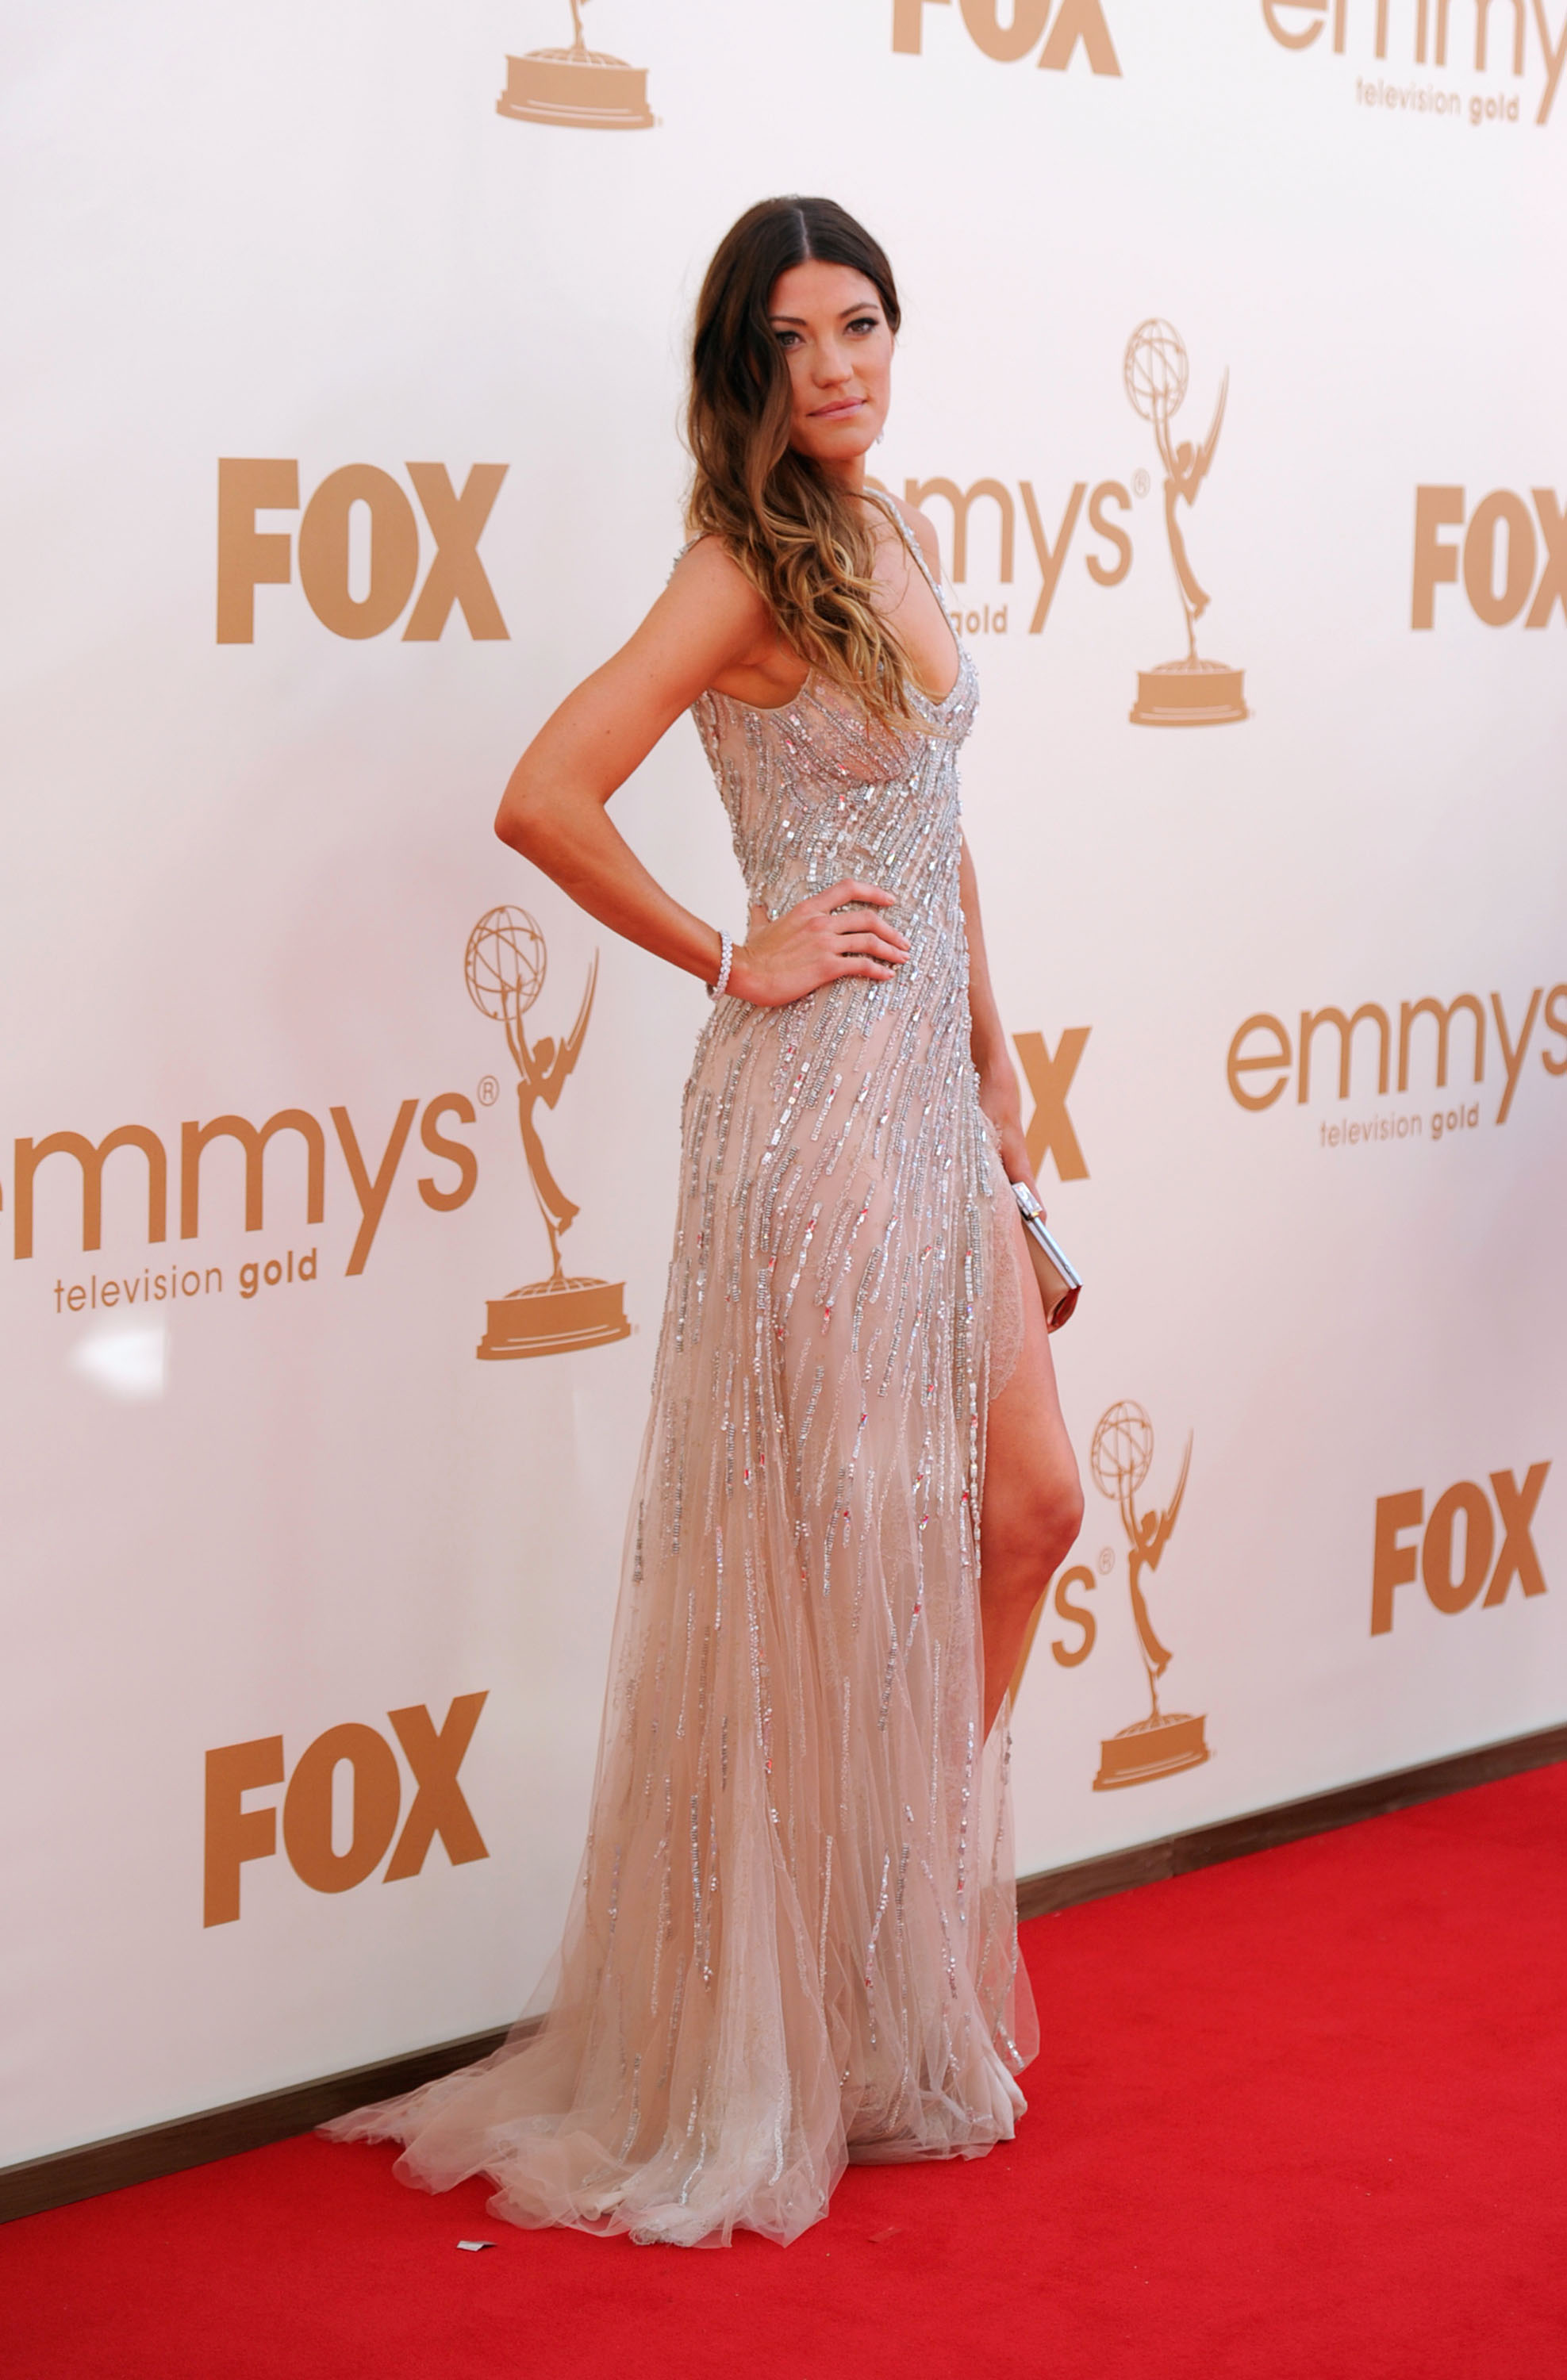 Jennifer Carpenter at the Emmys.